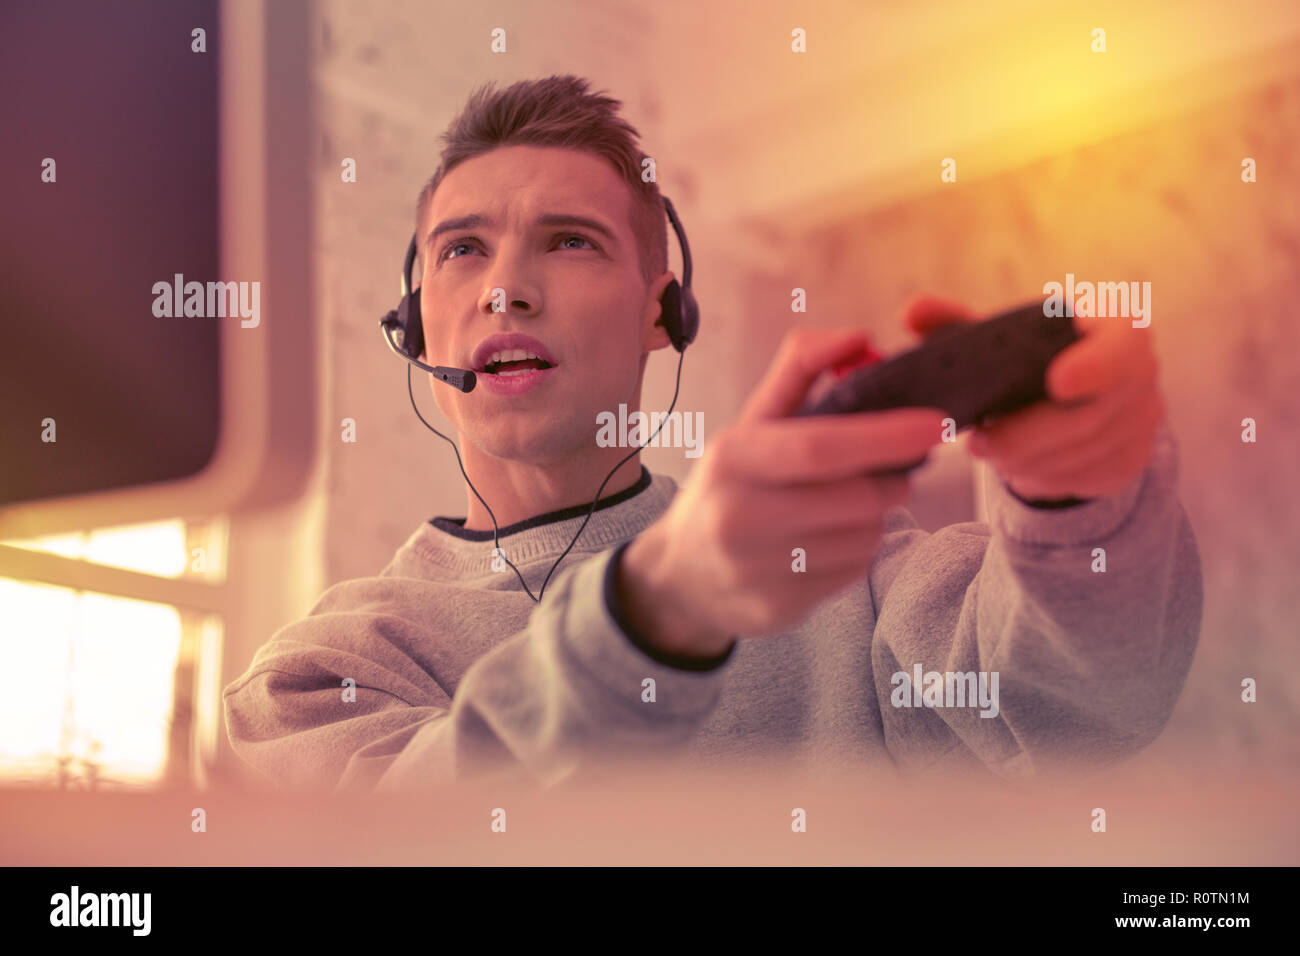 Young concentrated man enthusiastically playing with computer - Stock Image